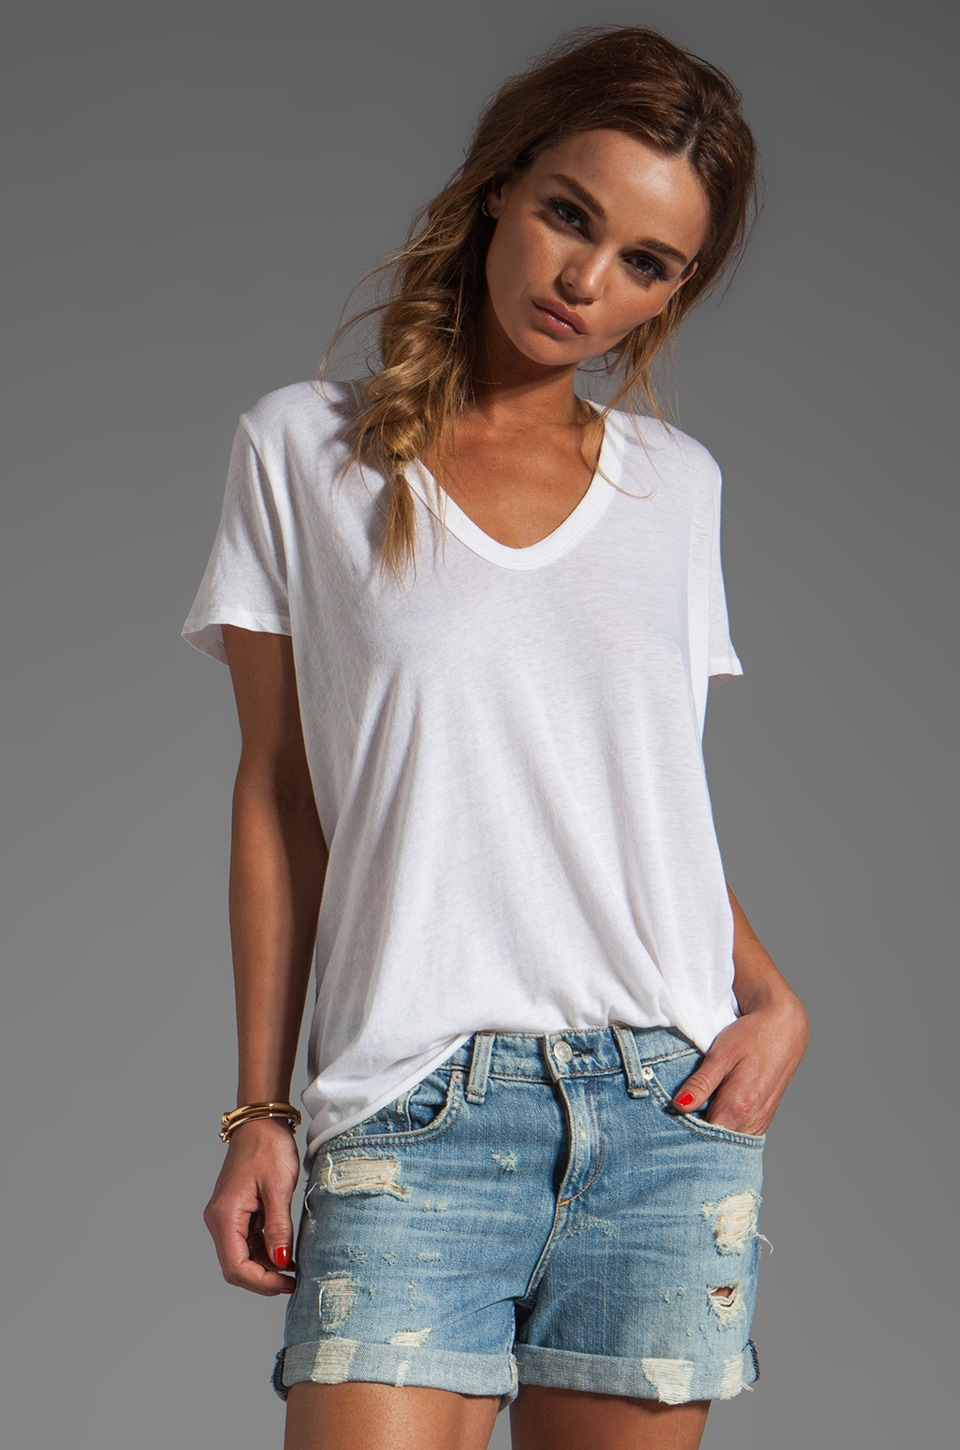 Enza Costa Tissue Jersey Loose Tee in Cloud